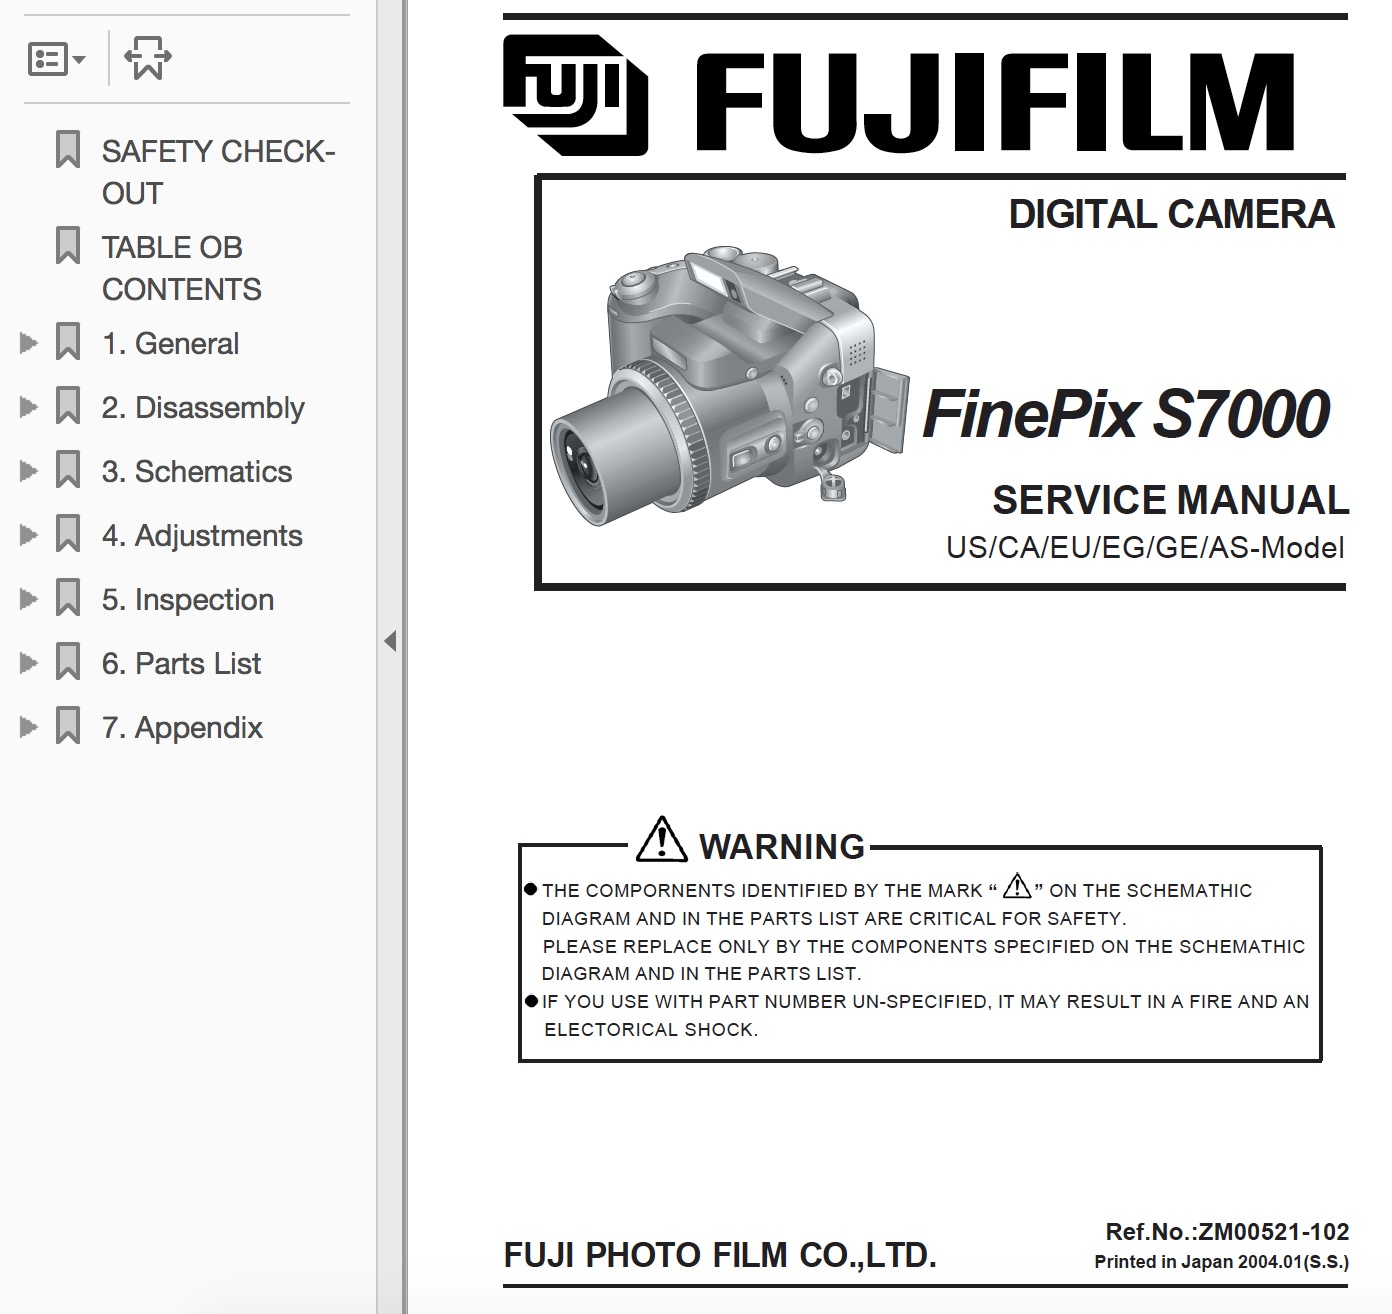 FUJIFILM FinePix S7000 Digital Camera Service Repair Manual